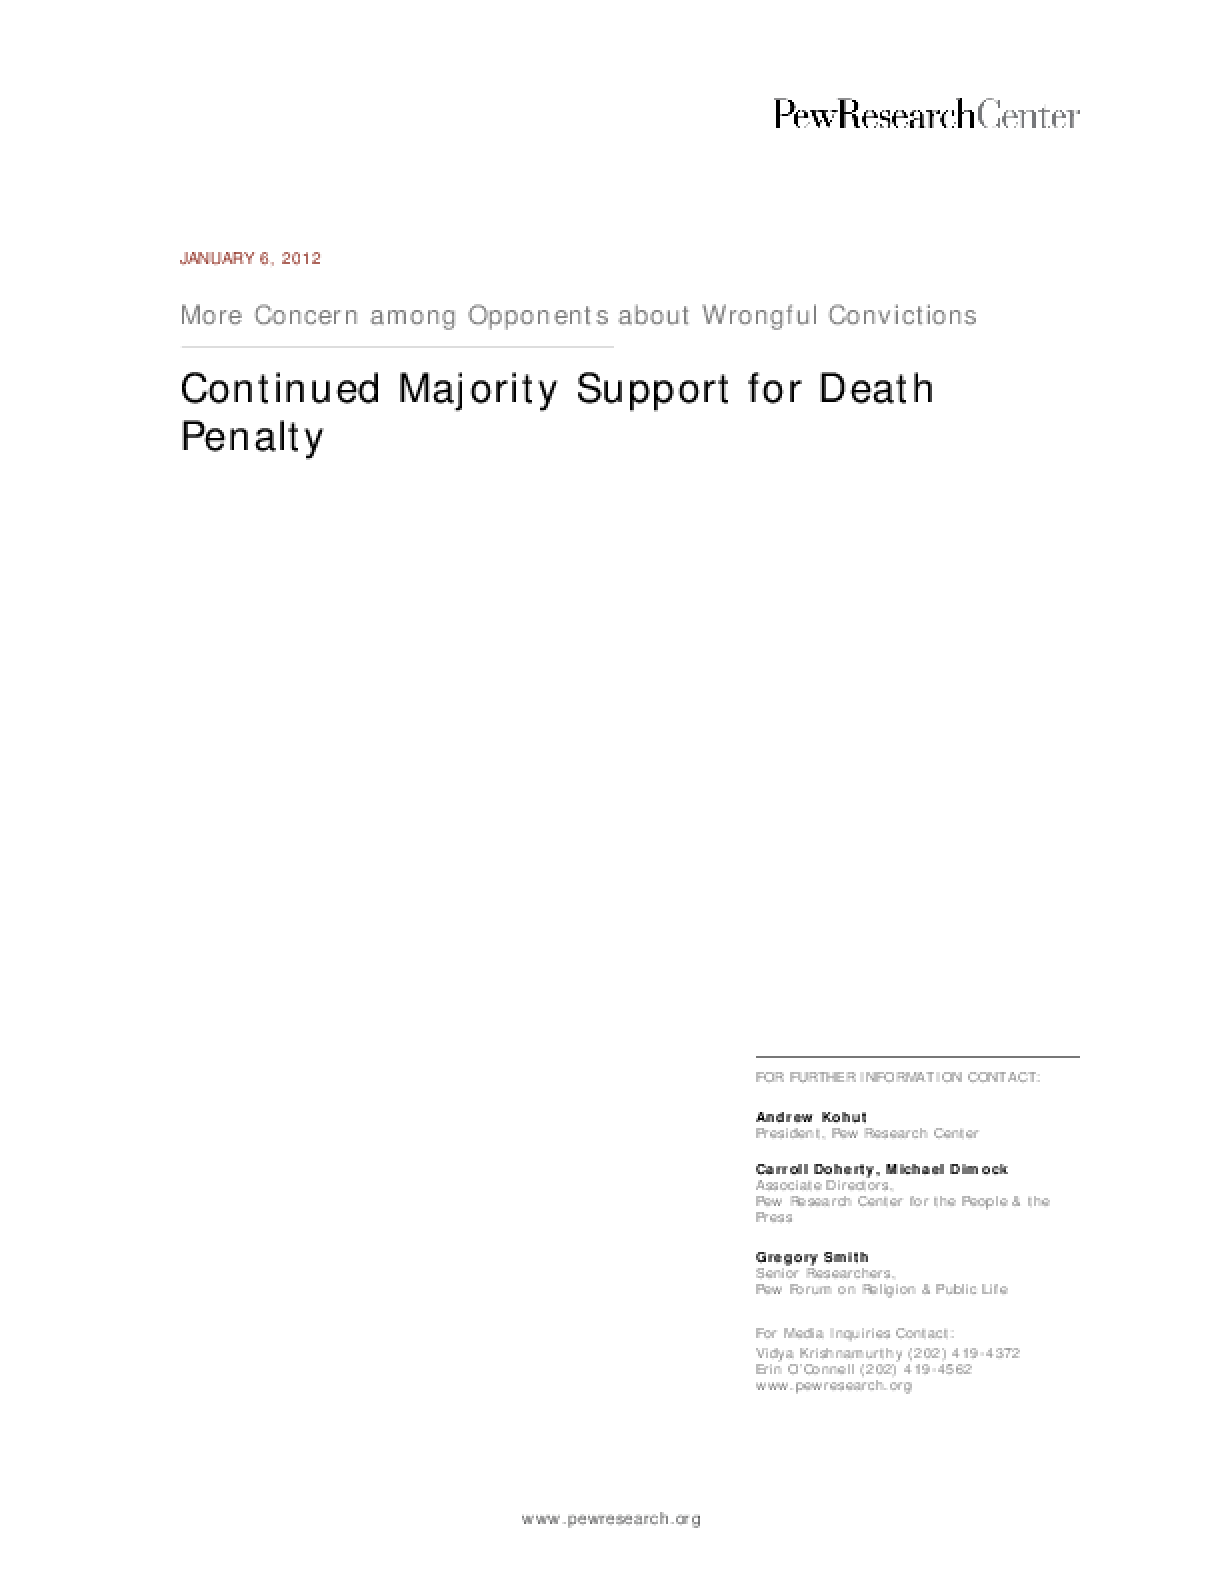 Continued Majority Support for Death Penalty